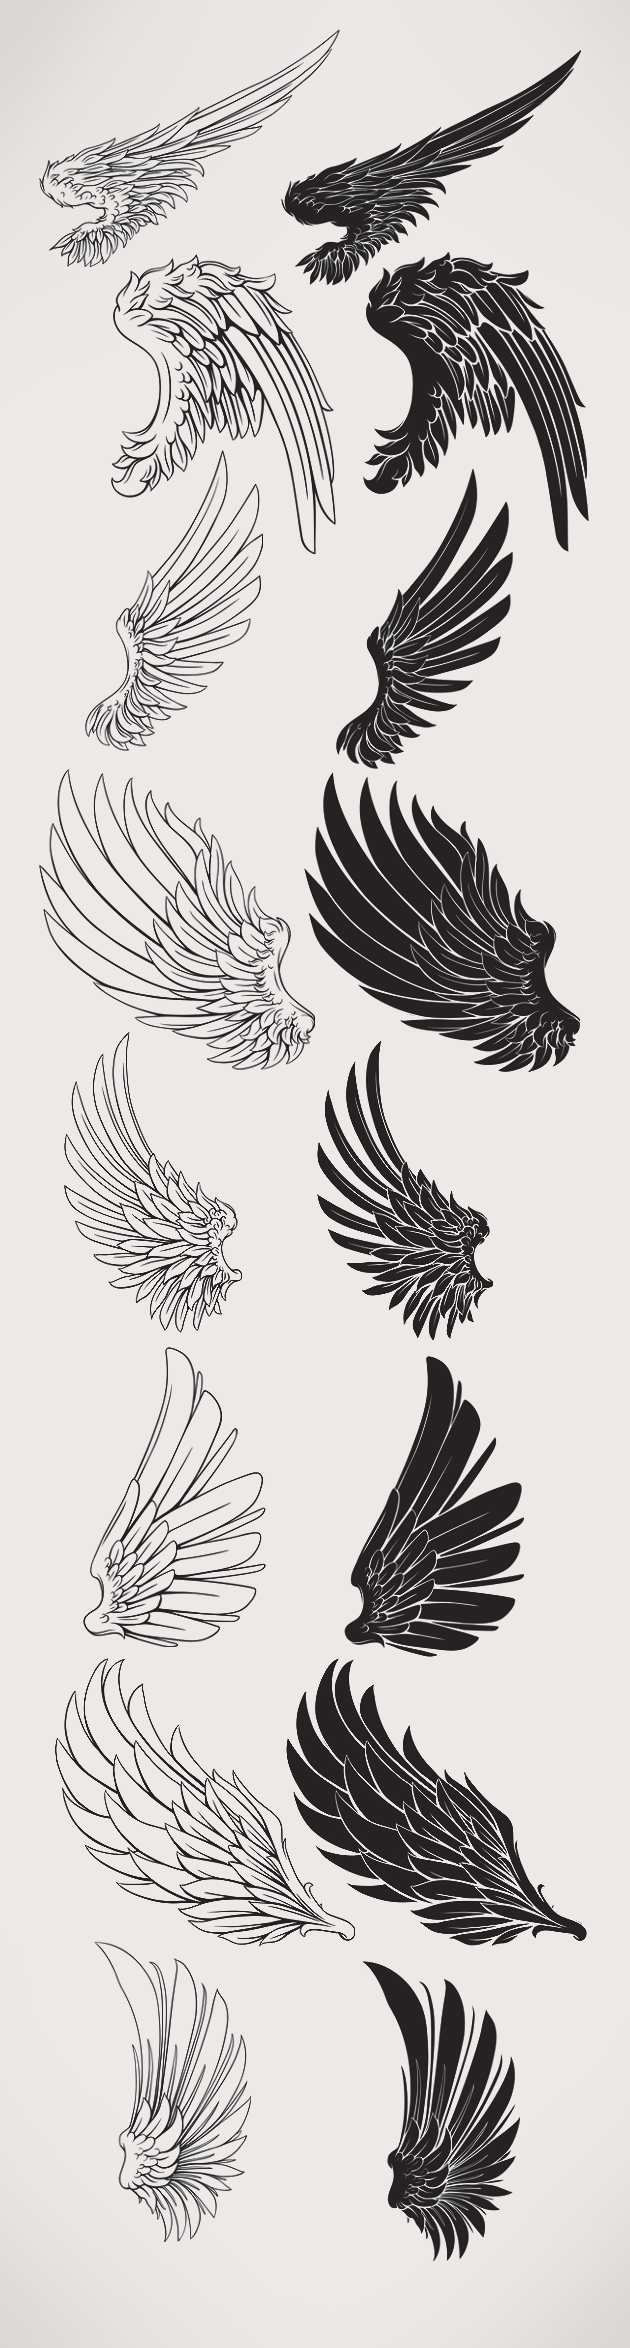 Feathered-Wings-PS-Brushes designtnt brushes feathered wings large